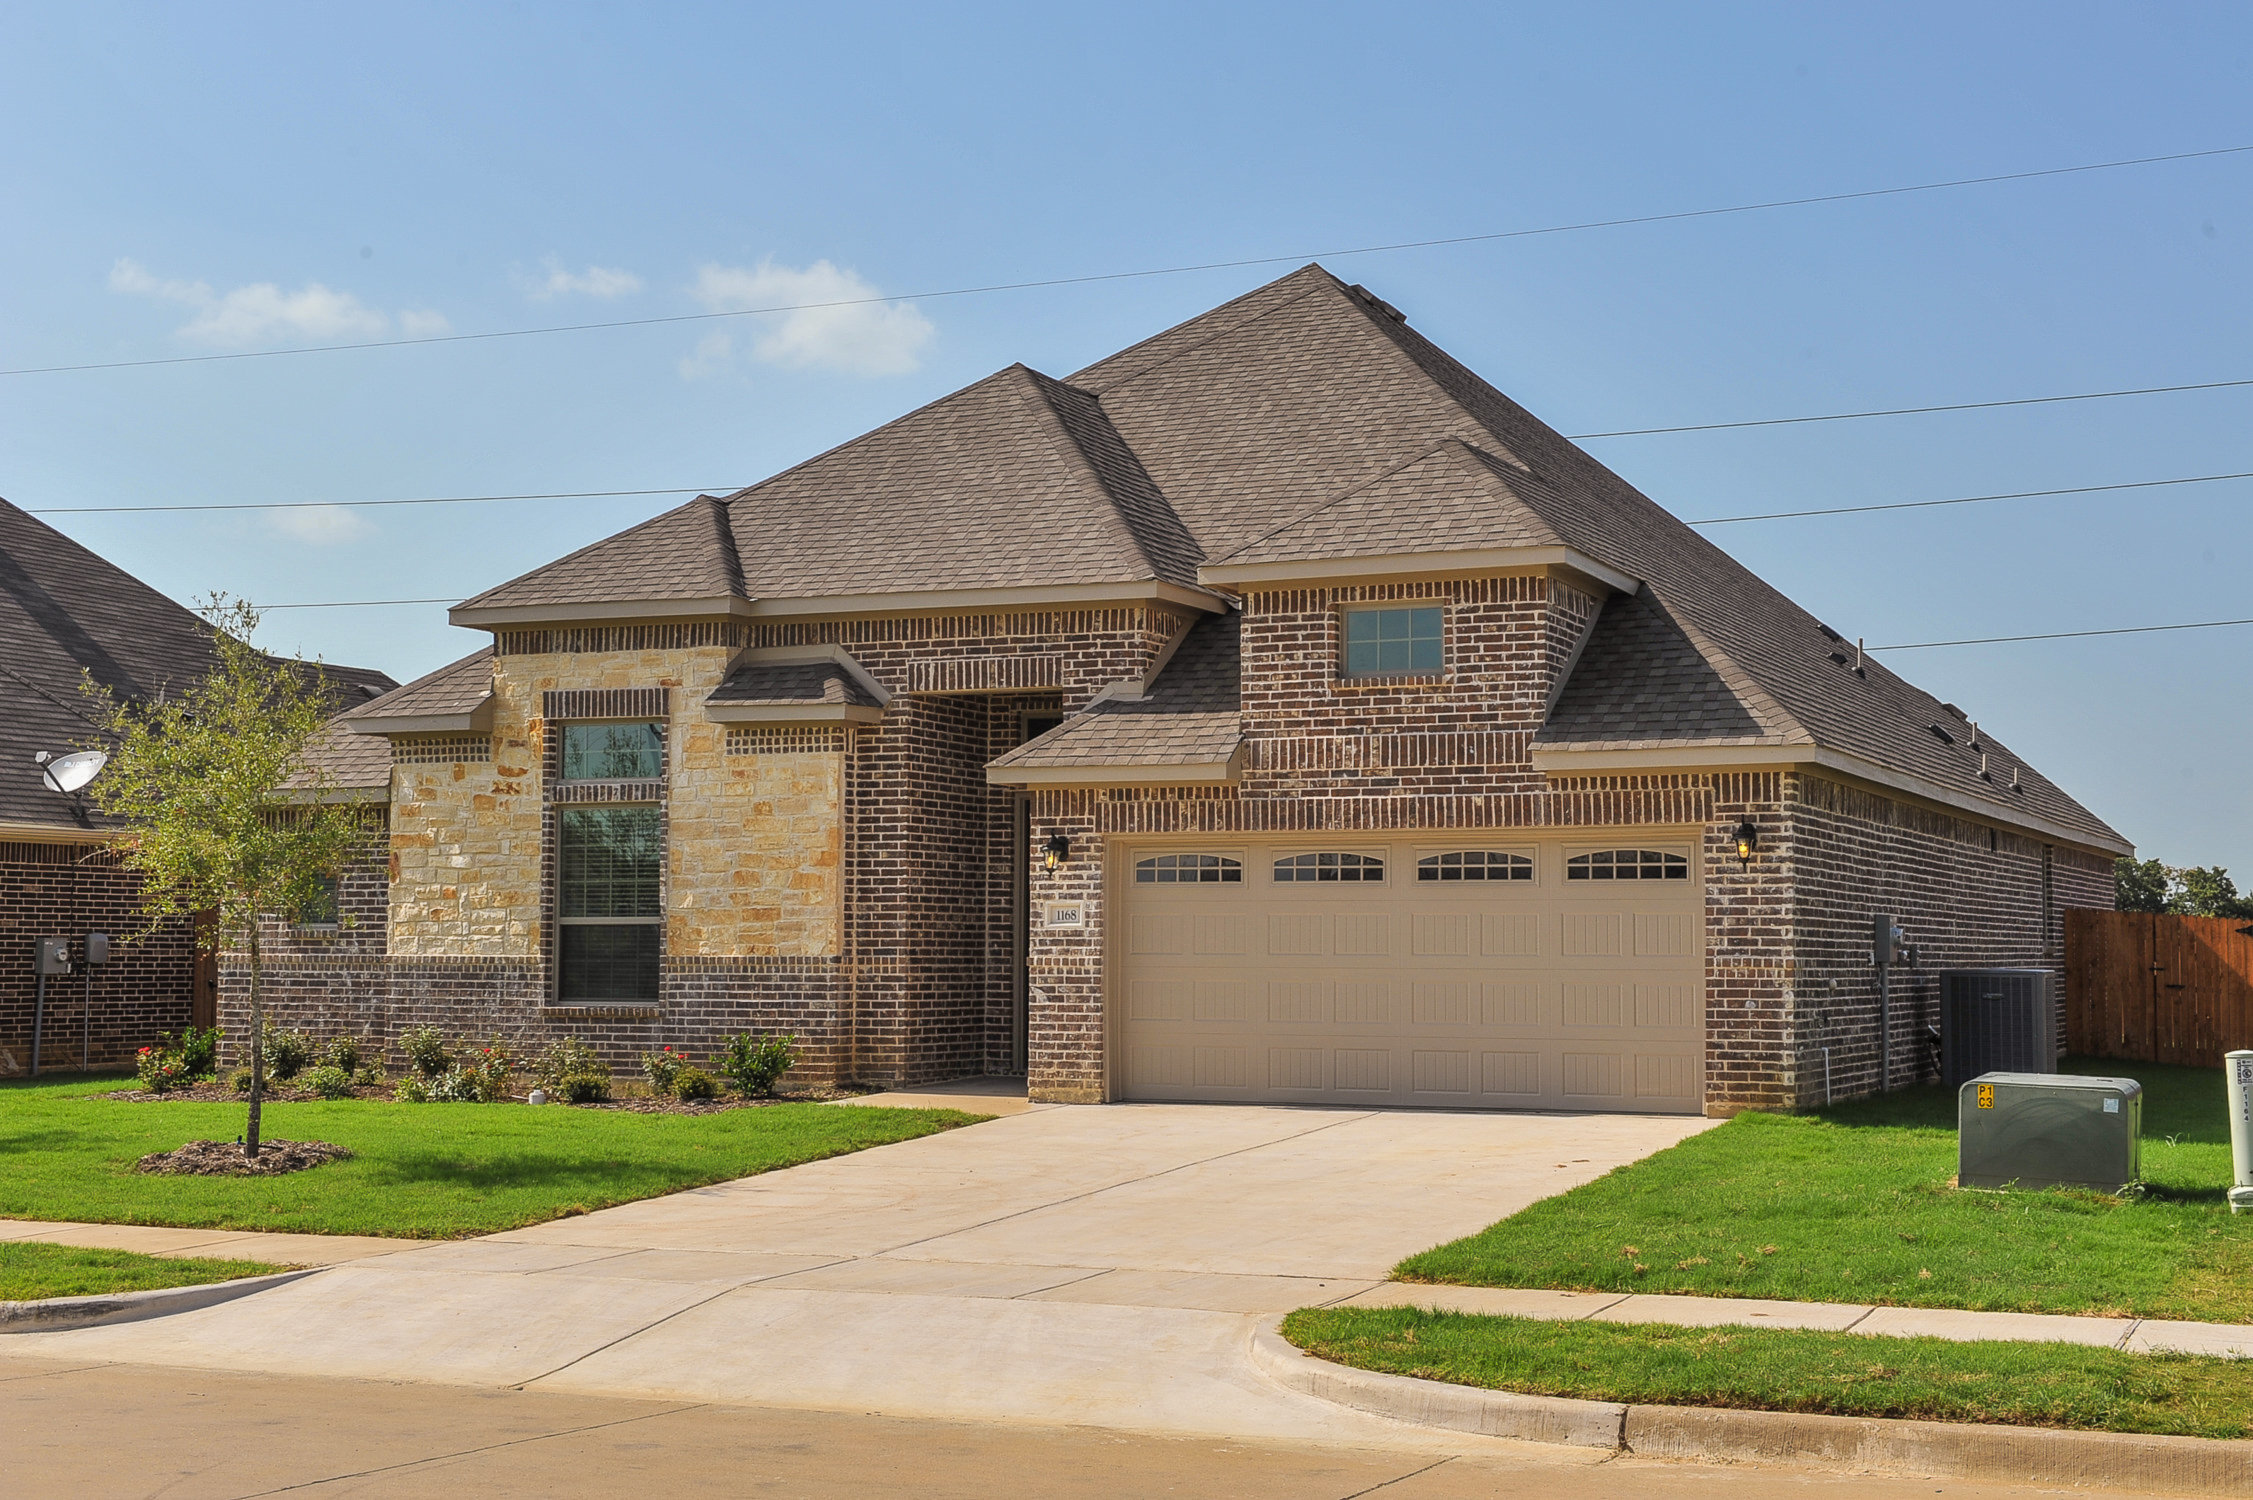 Lillian custom homes waxahachie tx new homes by lillian for New home source dfw